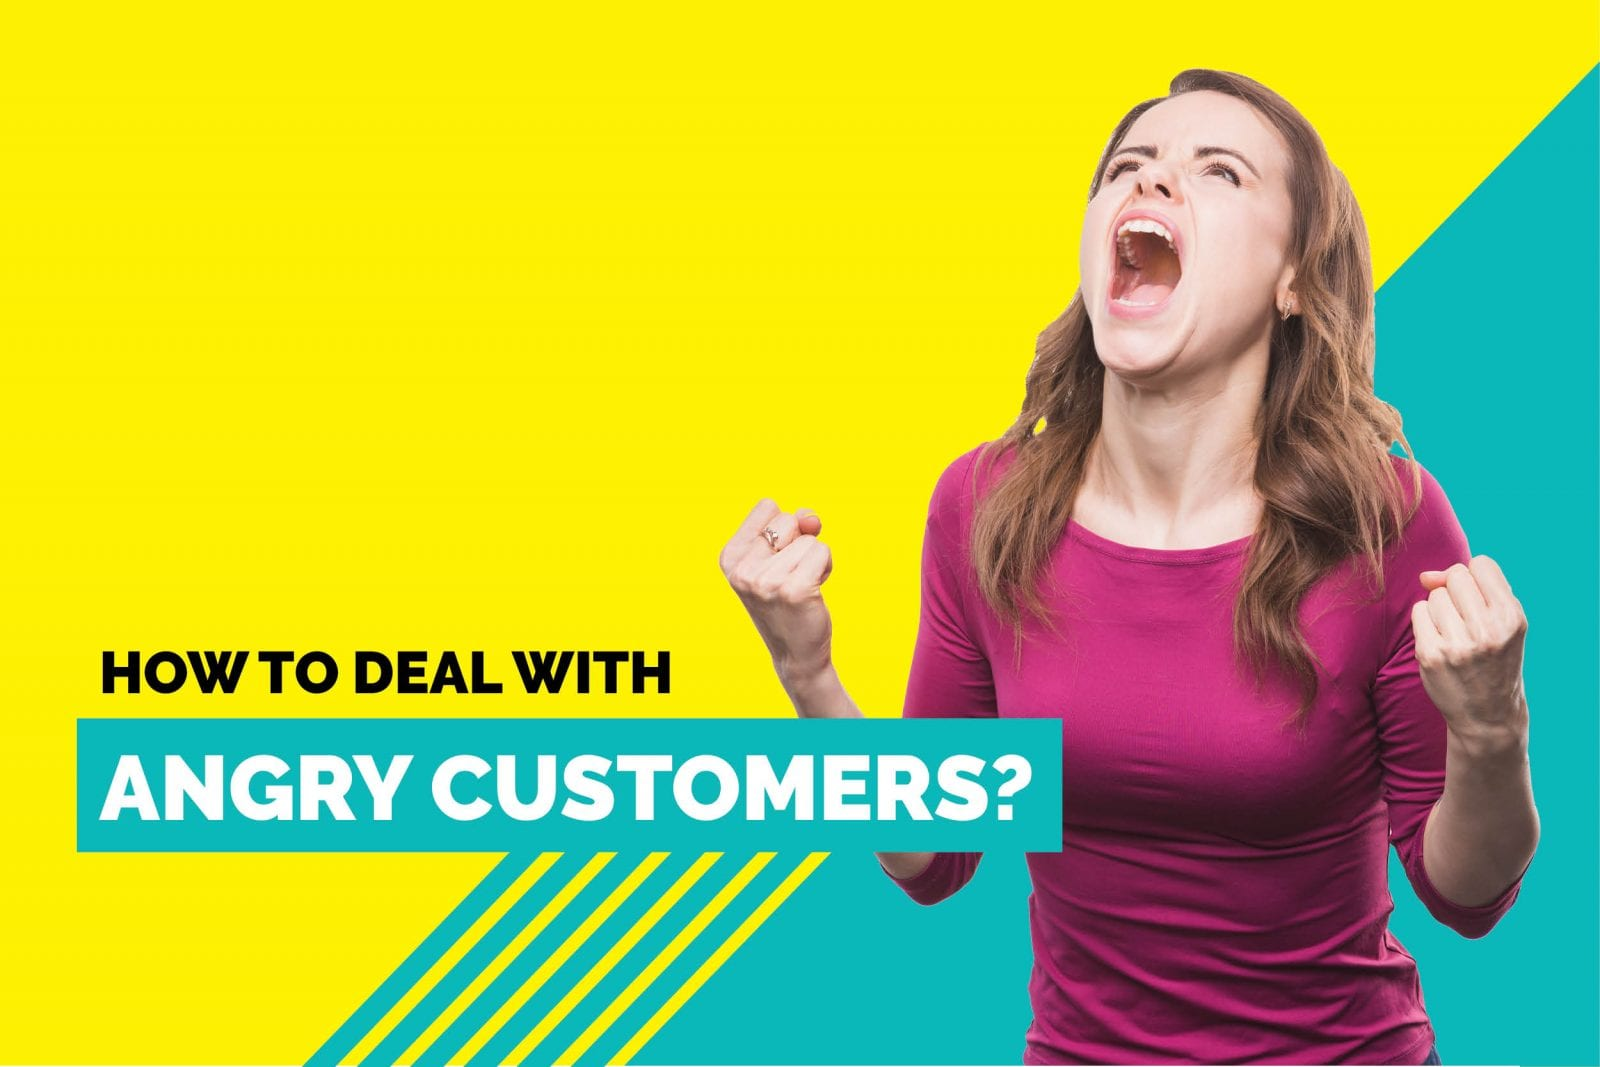 How to Deal With Angry Customers?